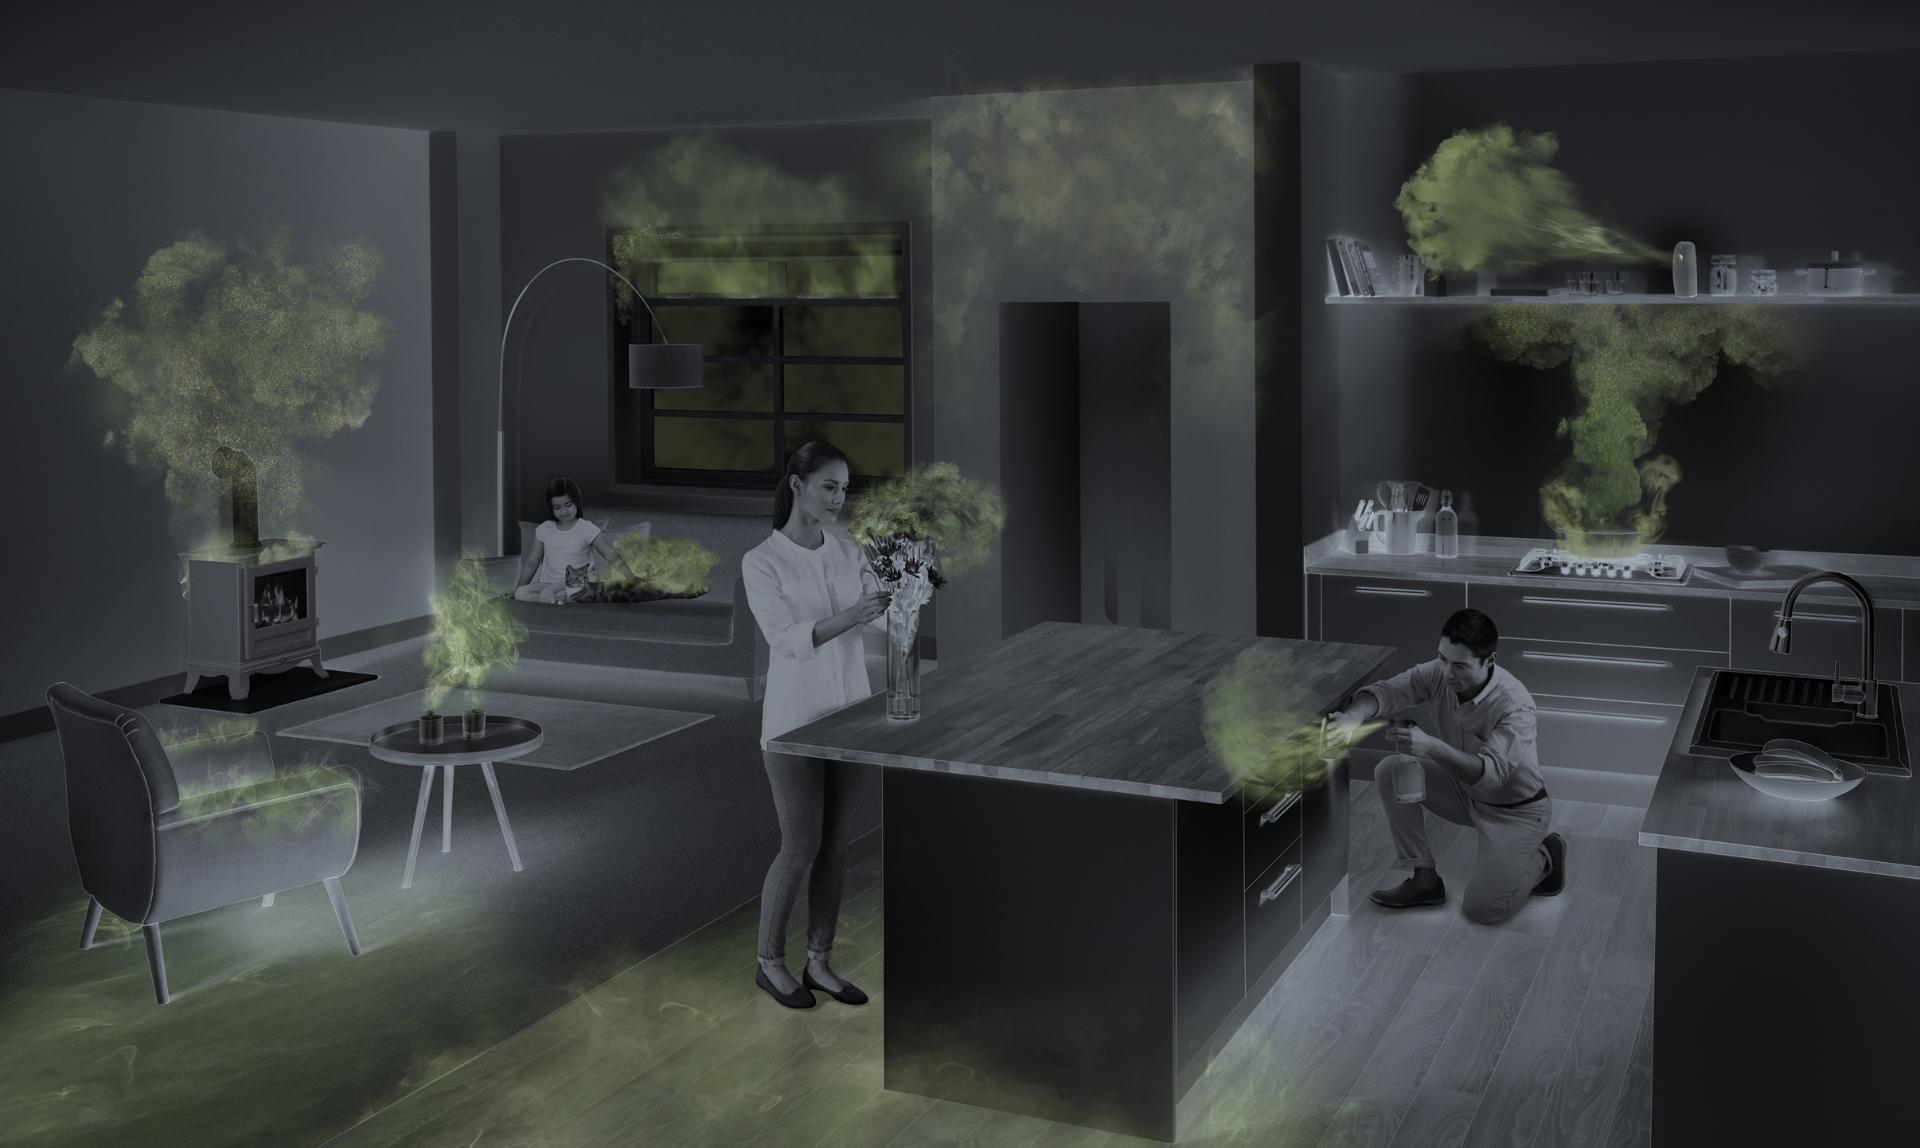 Image showing air pollution areas indoors